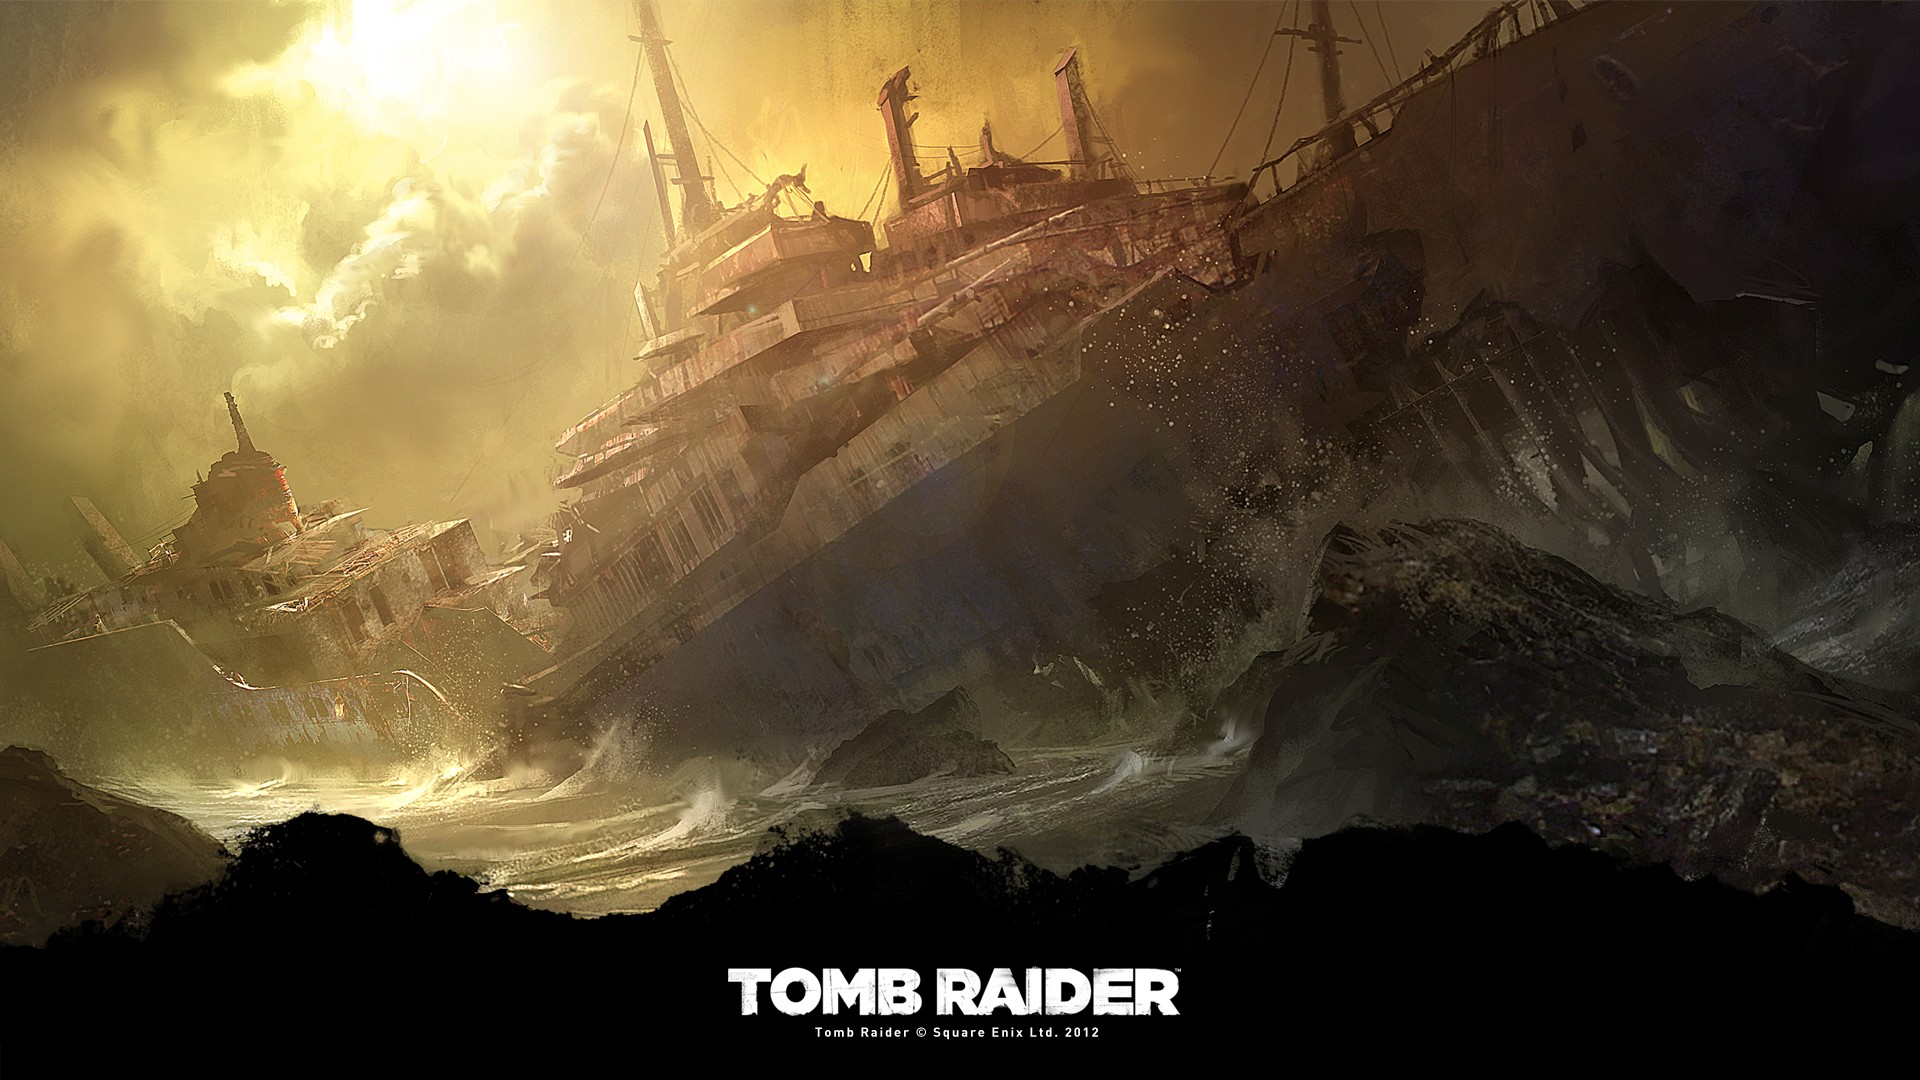 Hd Wallpapers 1080p Windows Tomb Raider A Survivor Is Born Wallpapers Hd Wallpapers